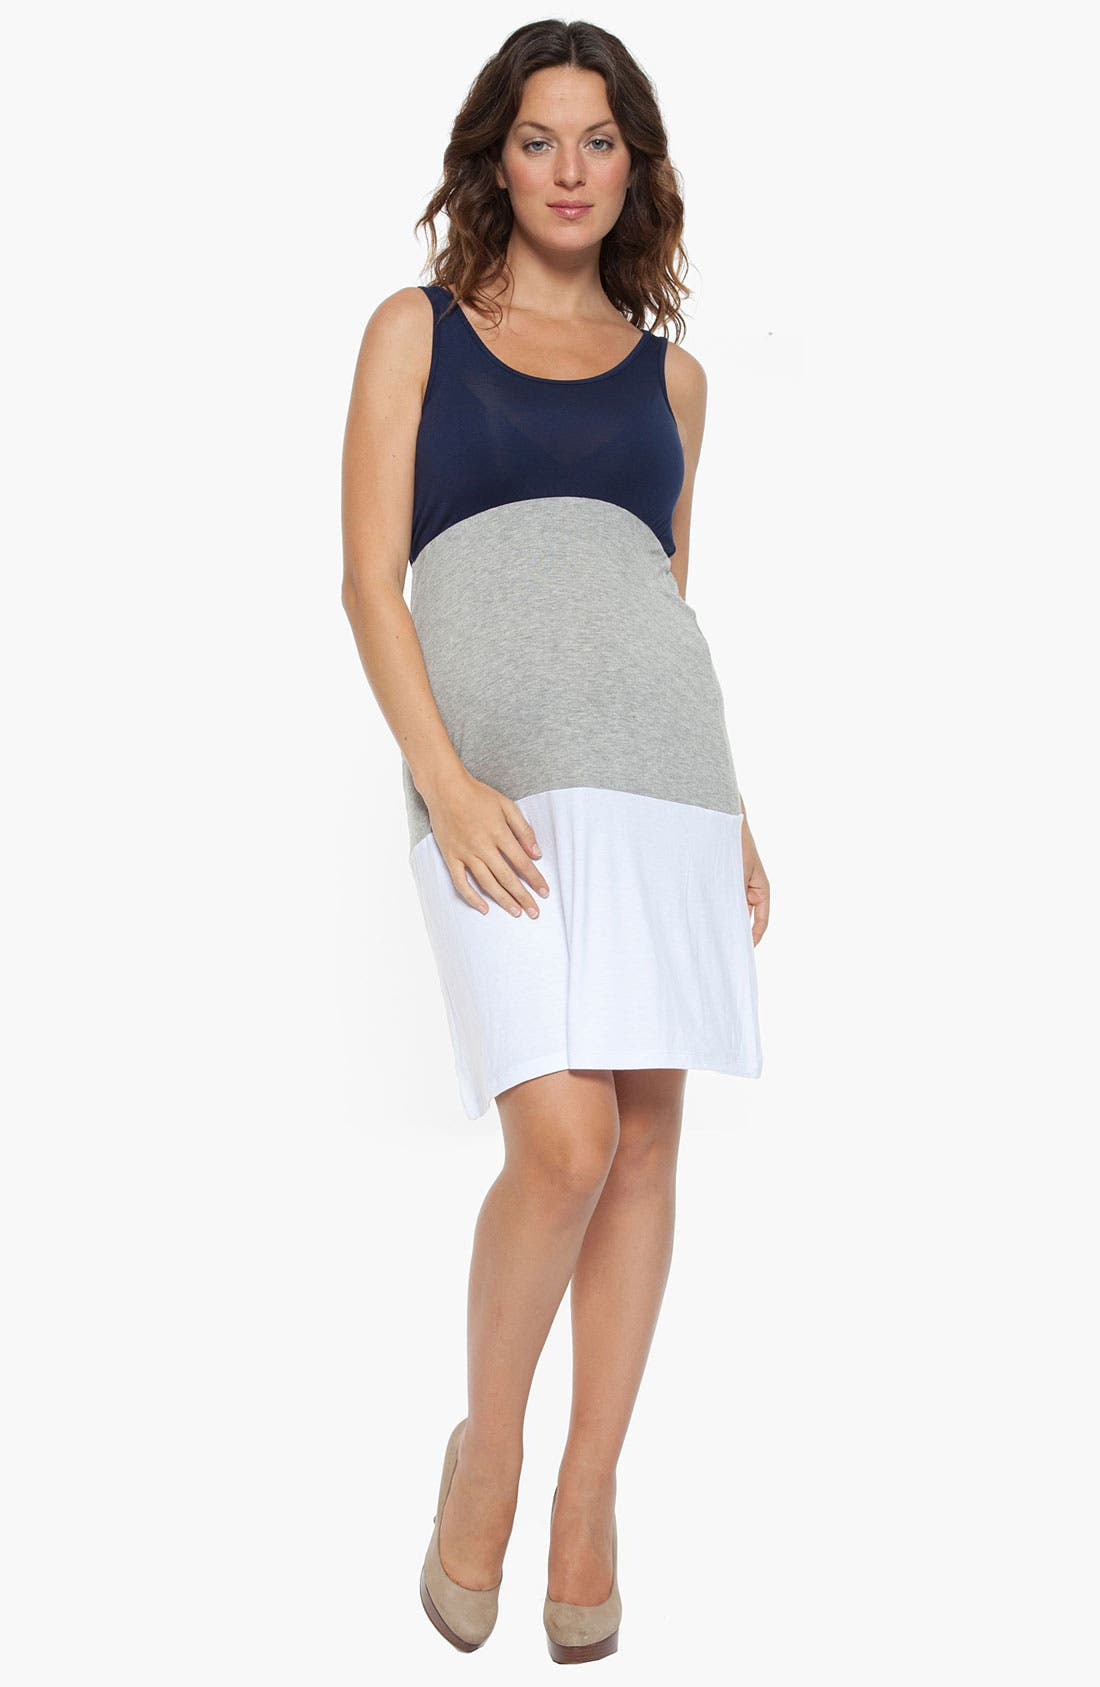 Main Image - Nom Maternity 'Cece' Maternity Tank Dress